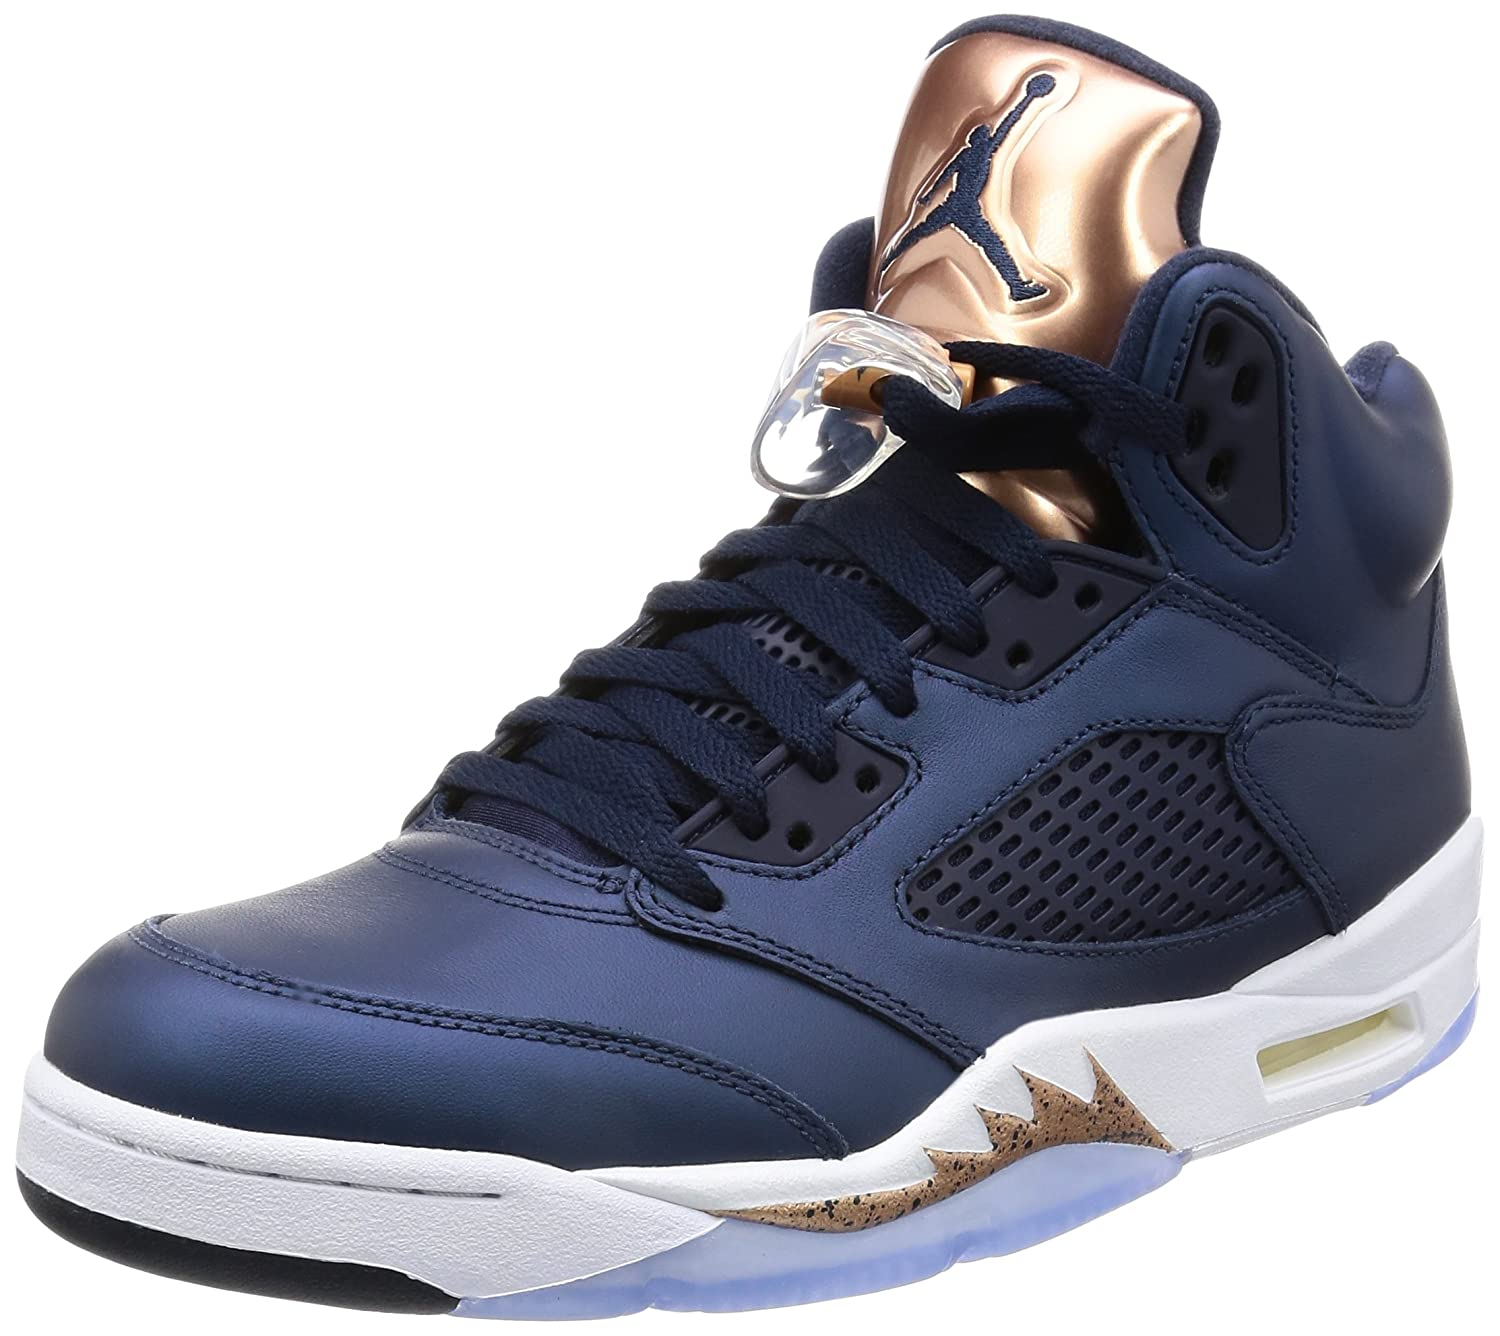 Obsidian, white-metallic red bronze-bright grape Nike Men's Air Jordan 5 Retro Basketball shoes